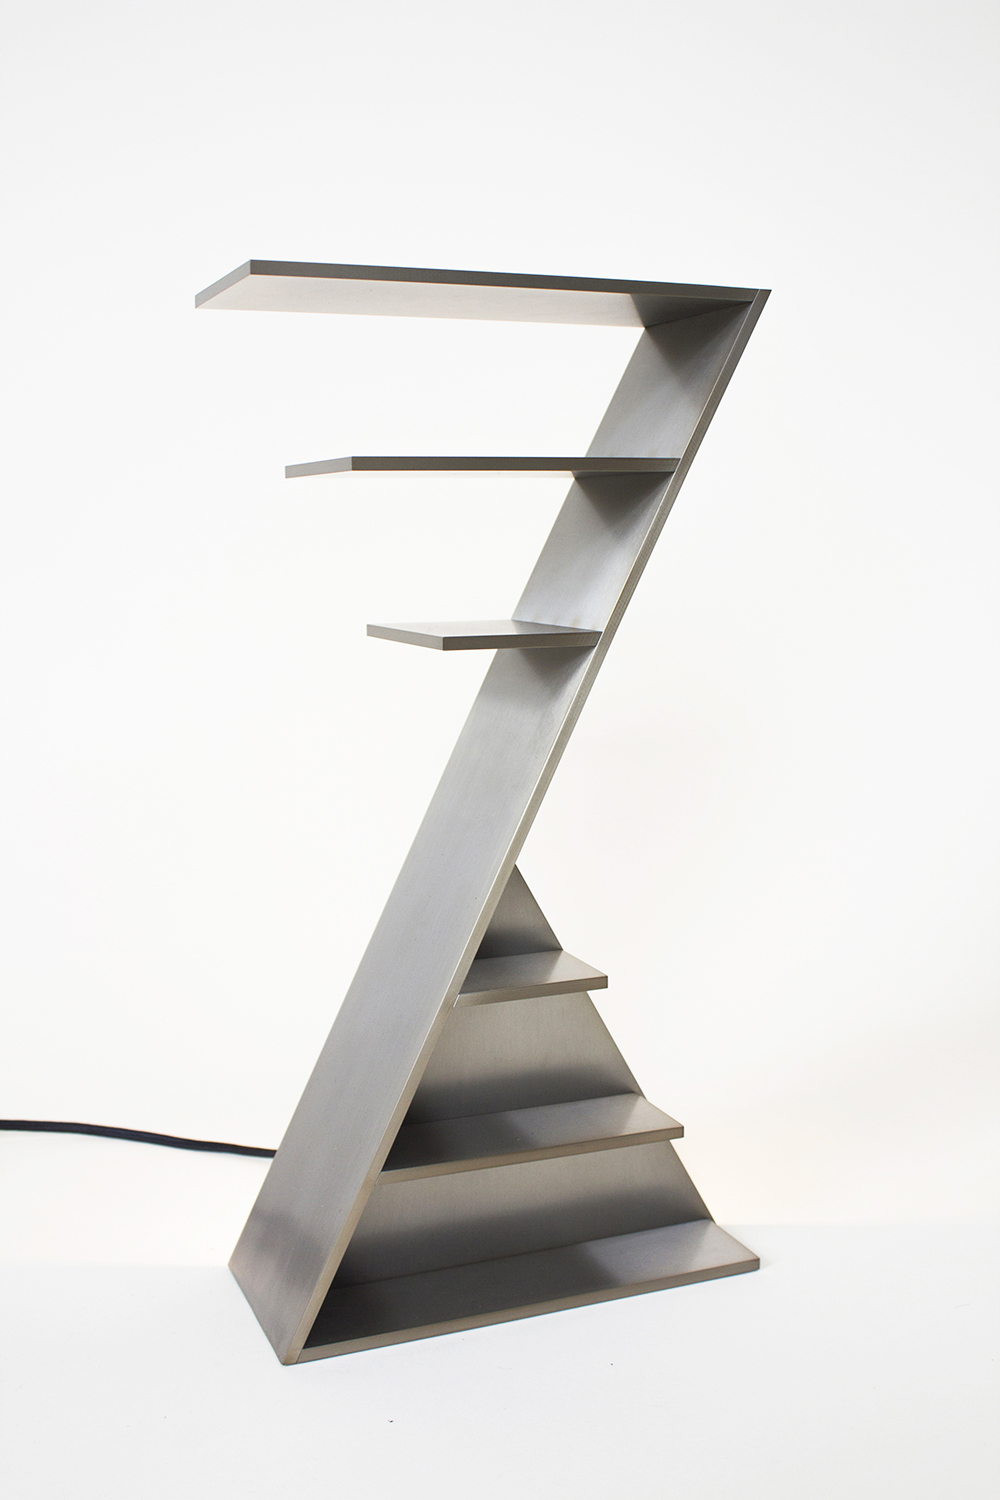 DUAT TABLE LAMP, 2015 BRUSHED STEEL  PDF  -  INQUIRE  +  MORE